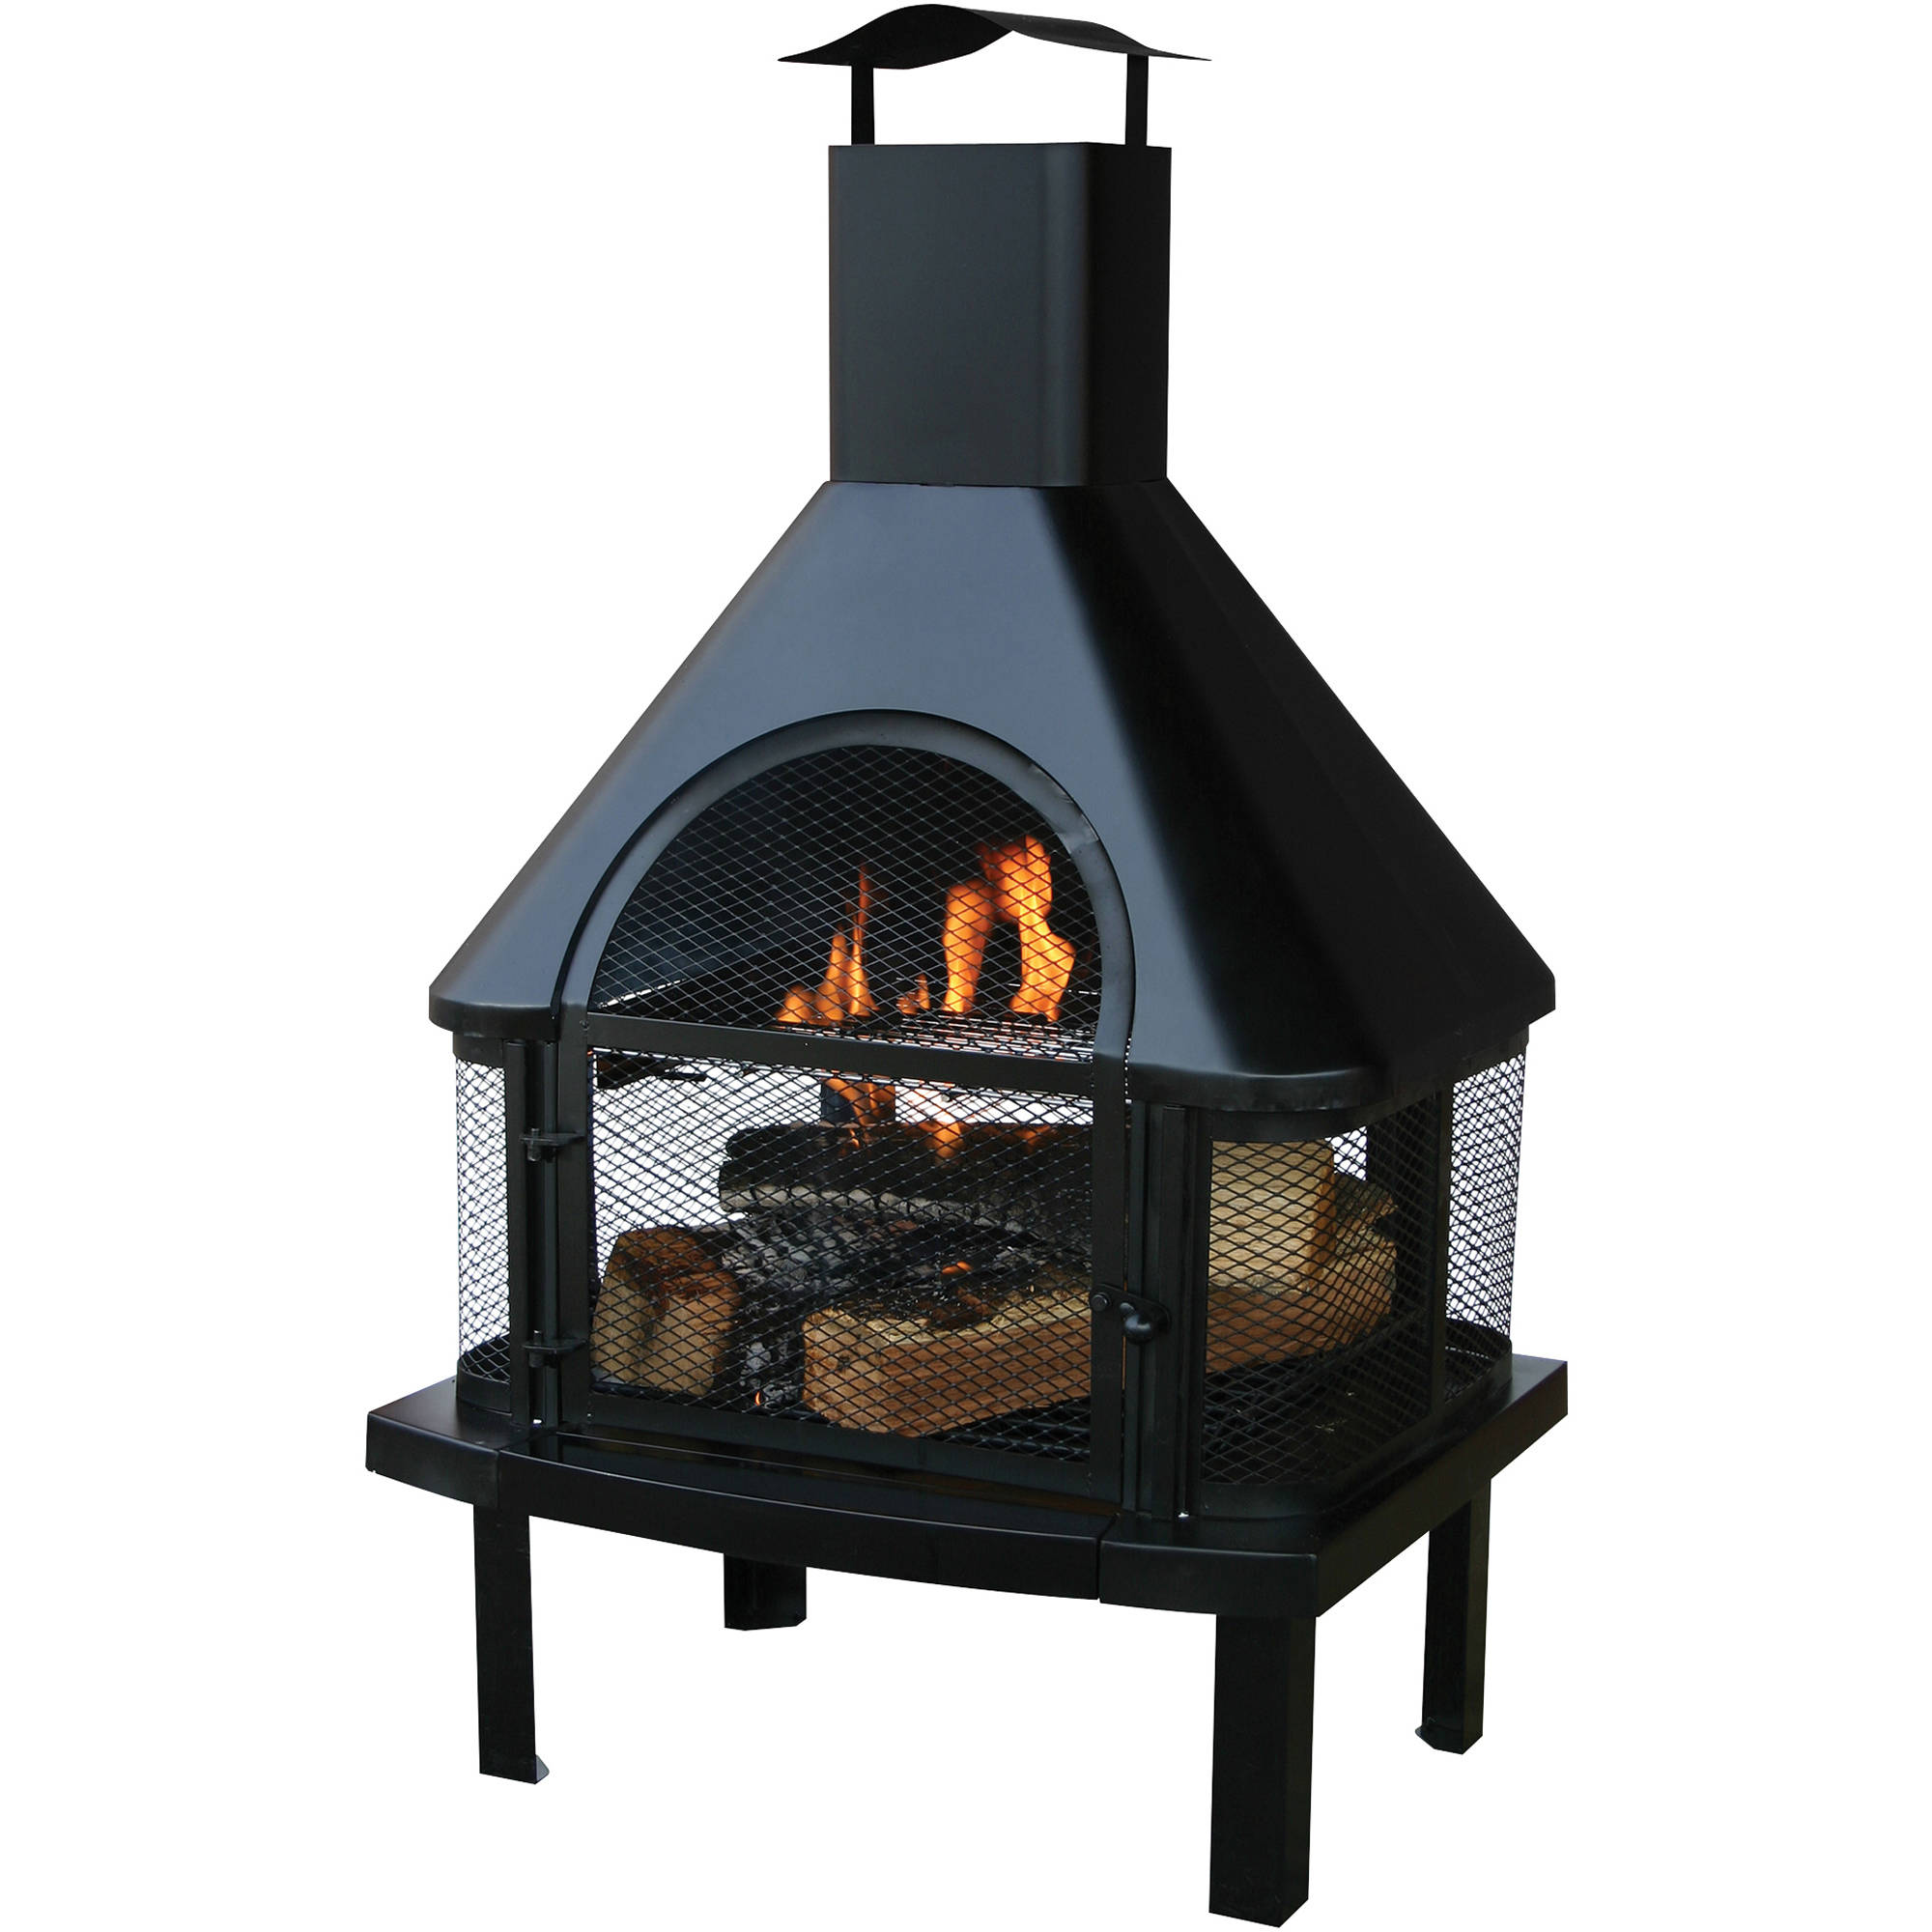 Uniflame Outdoor Wood Burning Fire Place, Black